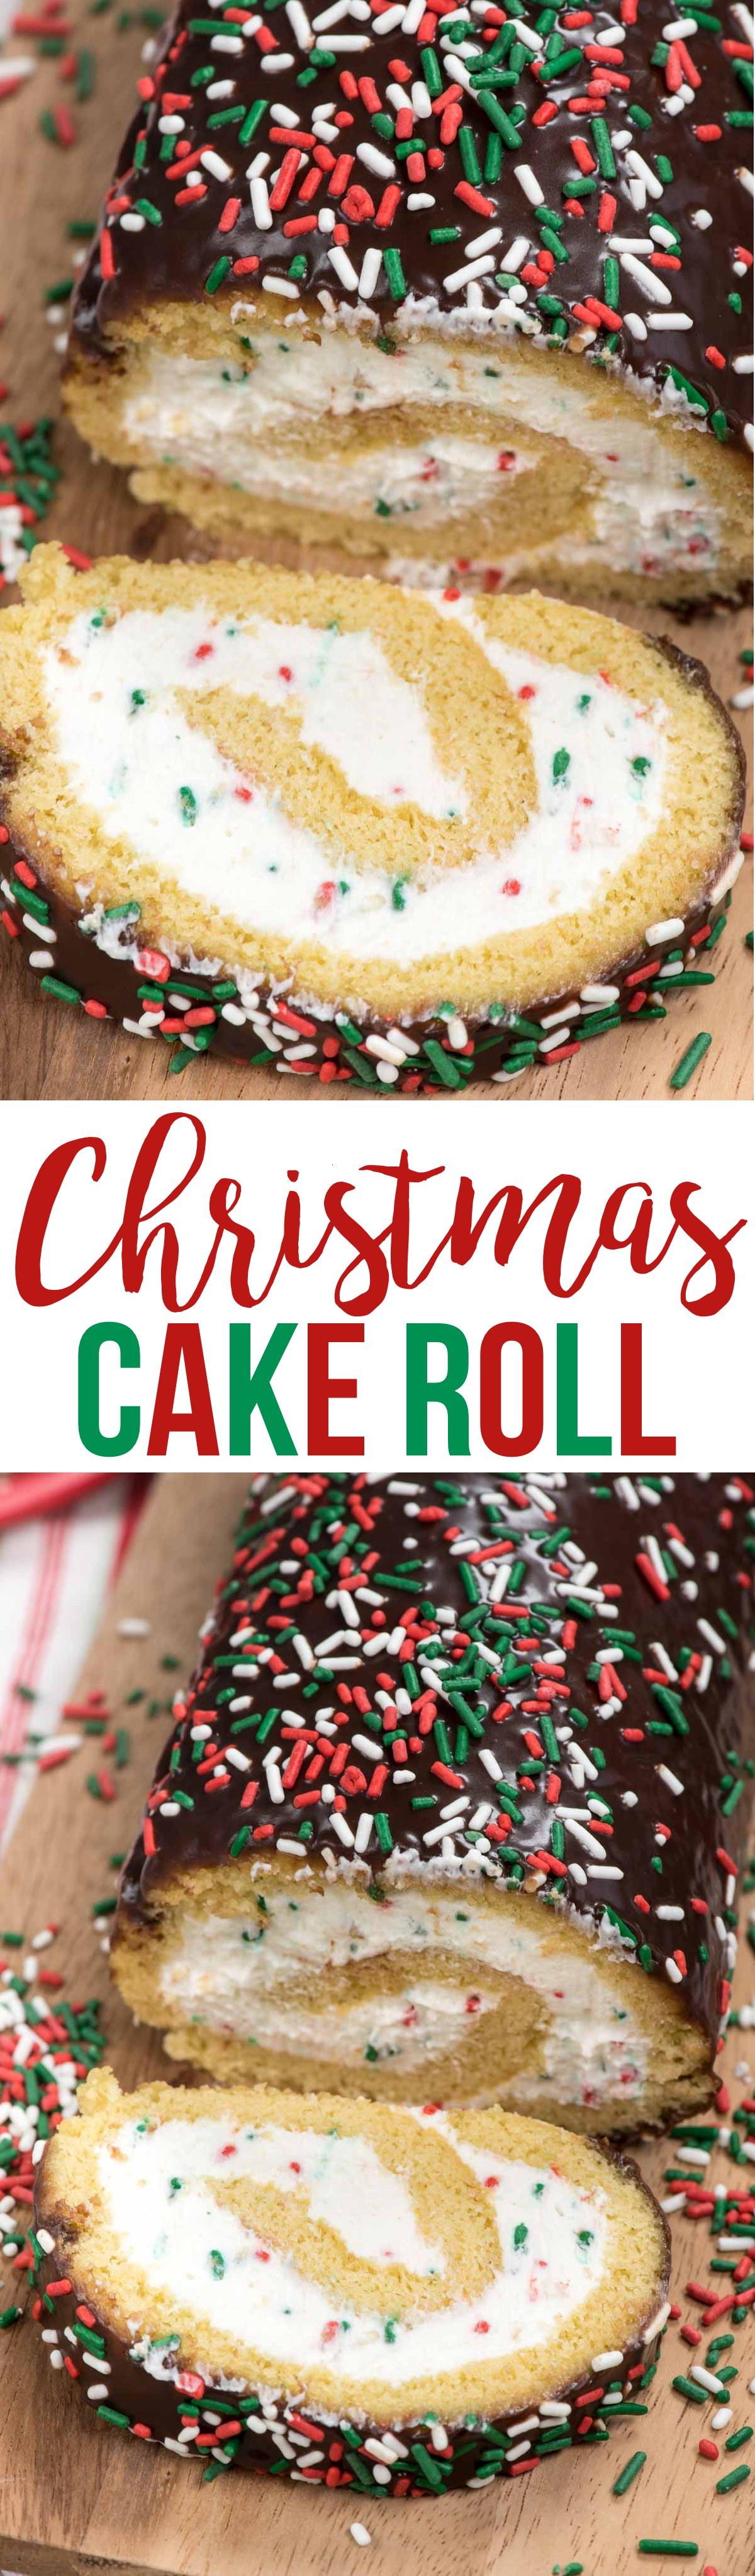 Make this Christmas Cake Roll for the perfect holiday dessert! A yellow cake roll filled with cream cheese whipped cream and sprinkles perfect for Christmas!